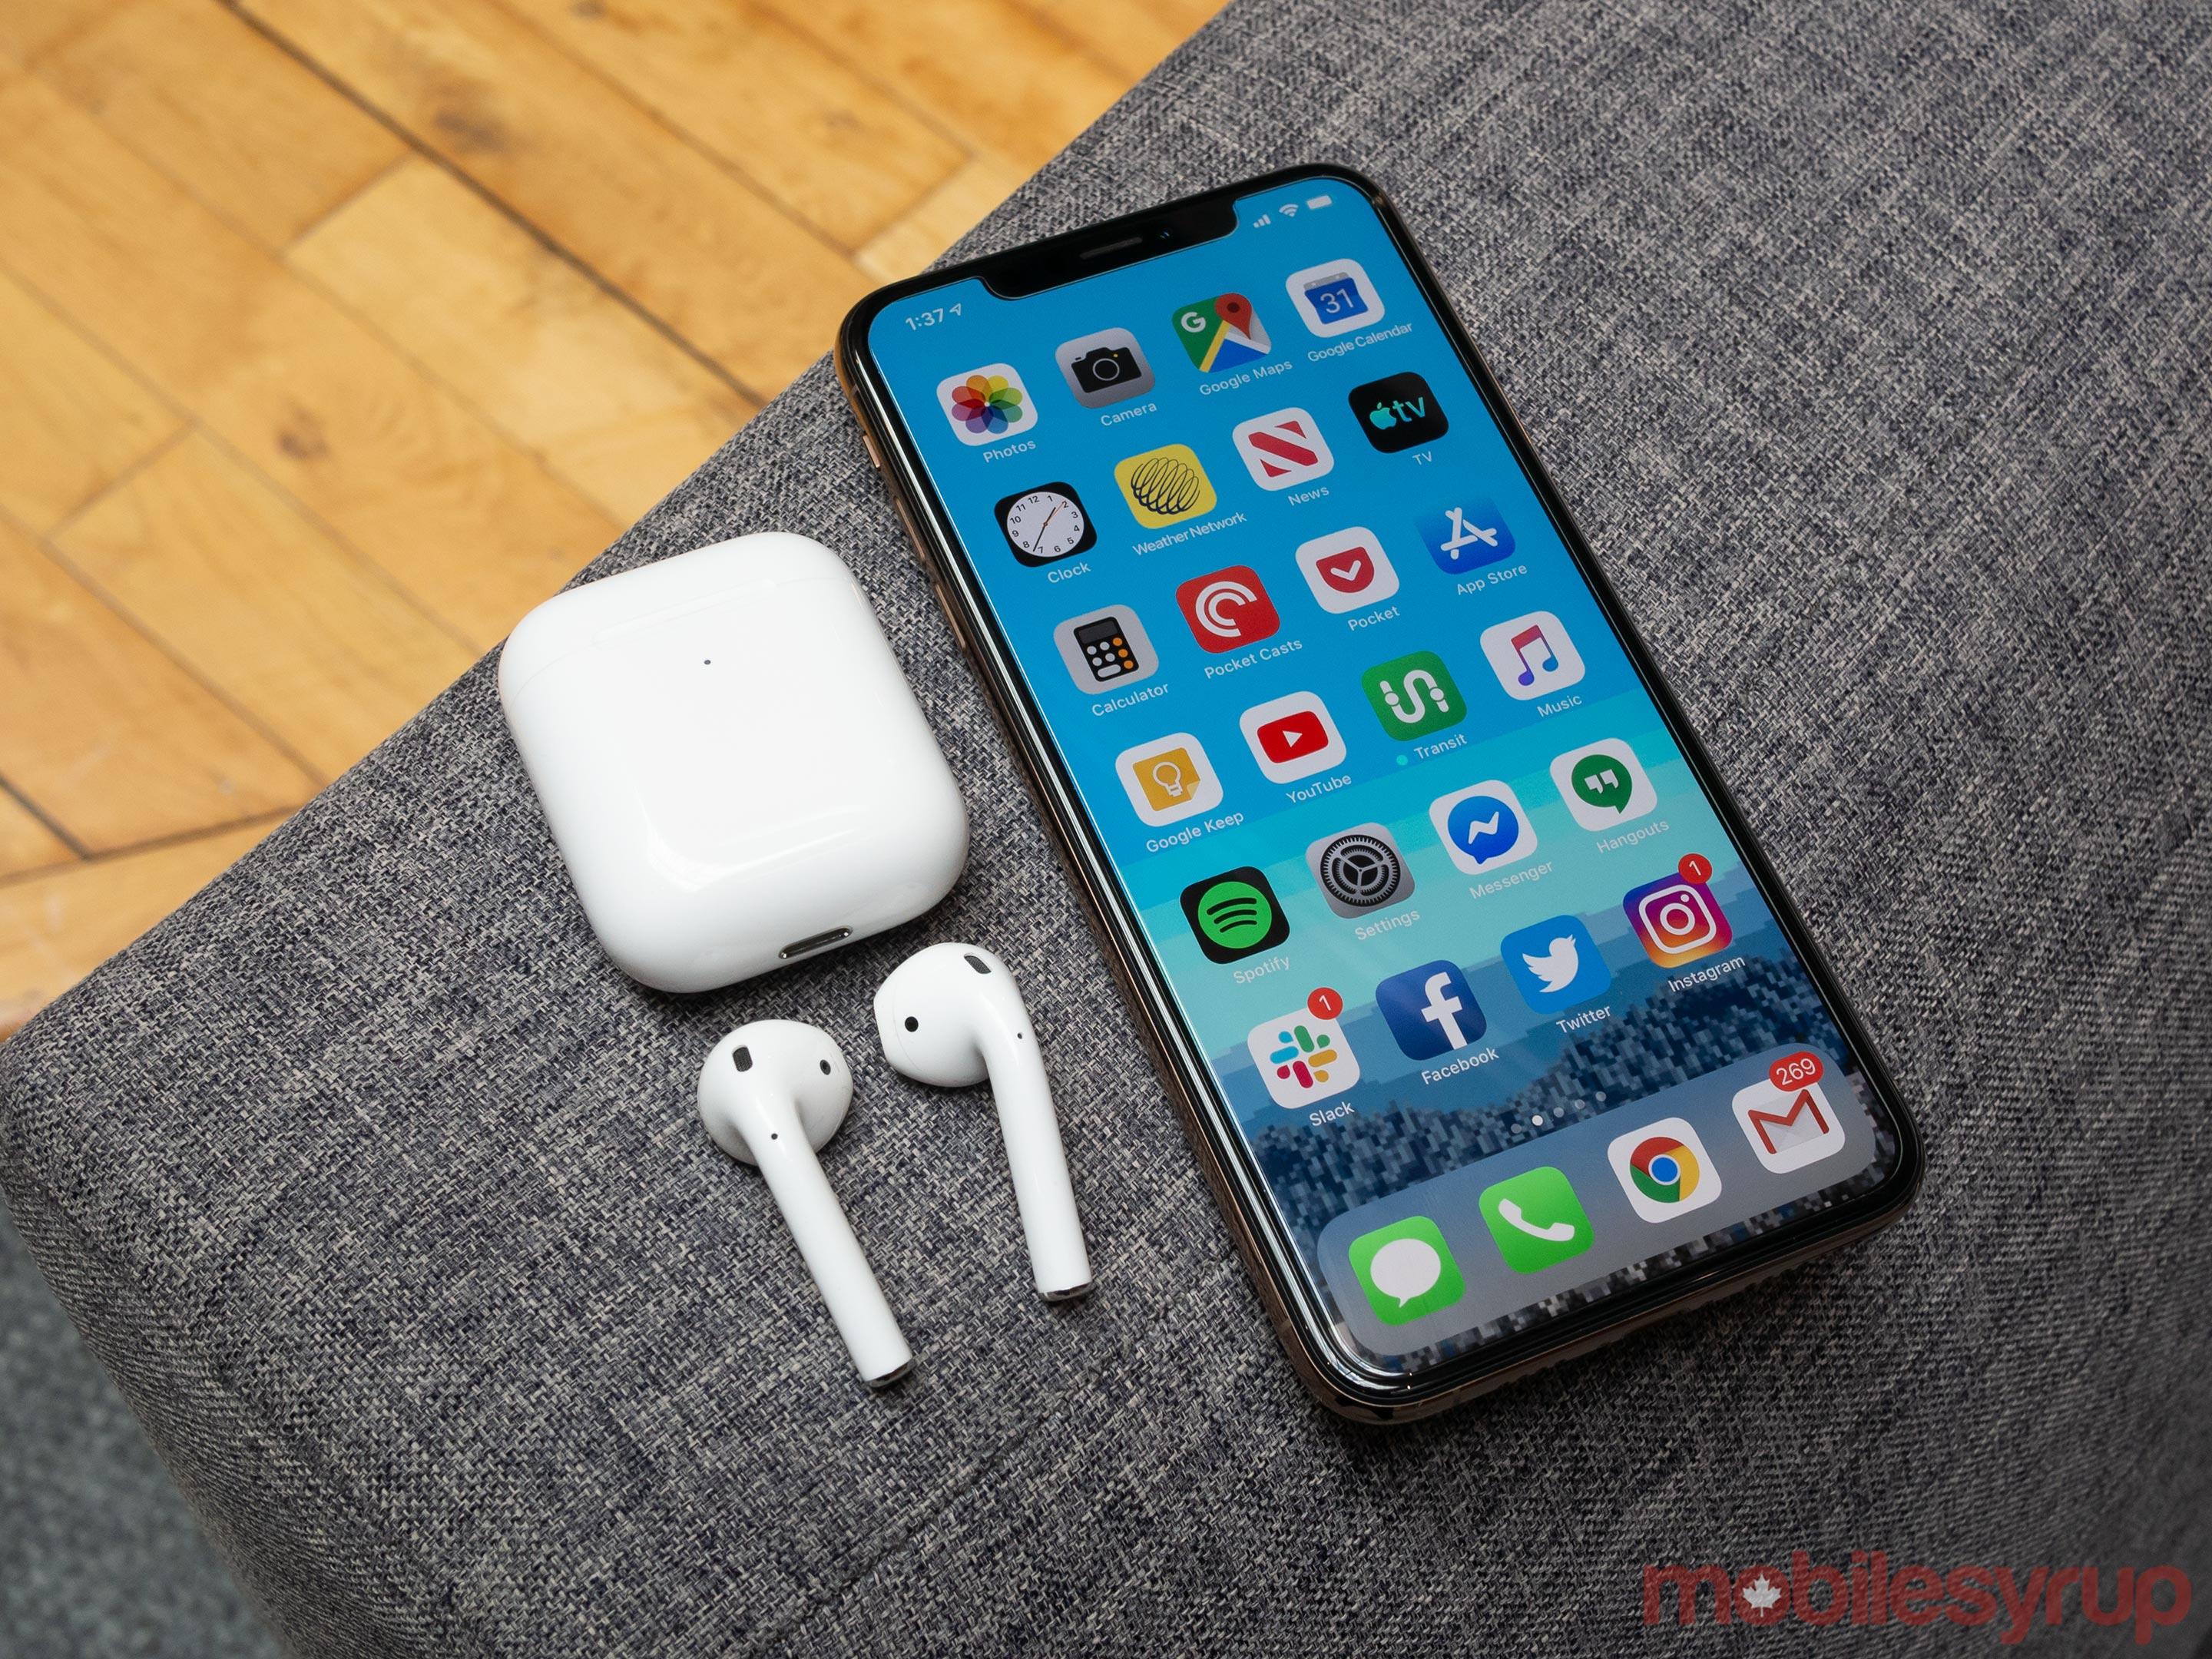 bb6500ca9d8 Moreover, I can't help but wish Apple would release its AirPods in more  varied colours like the company does with its Beats headphones brand; a  pair of ...